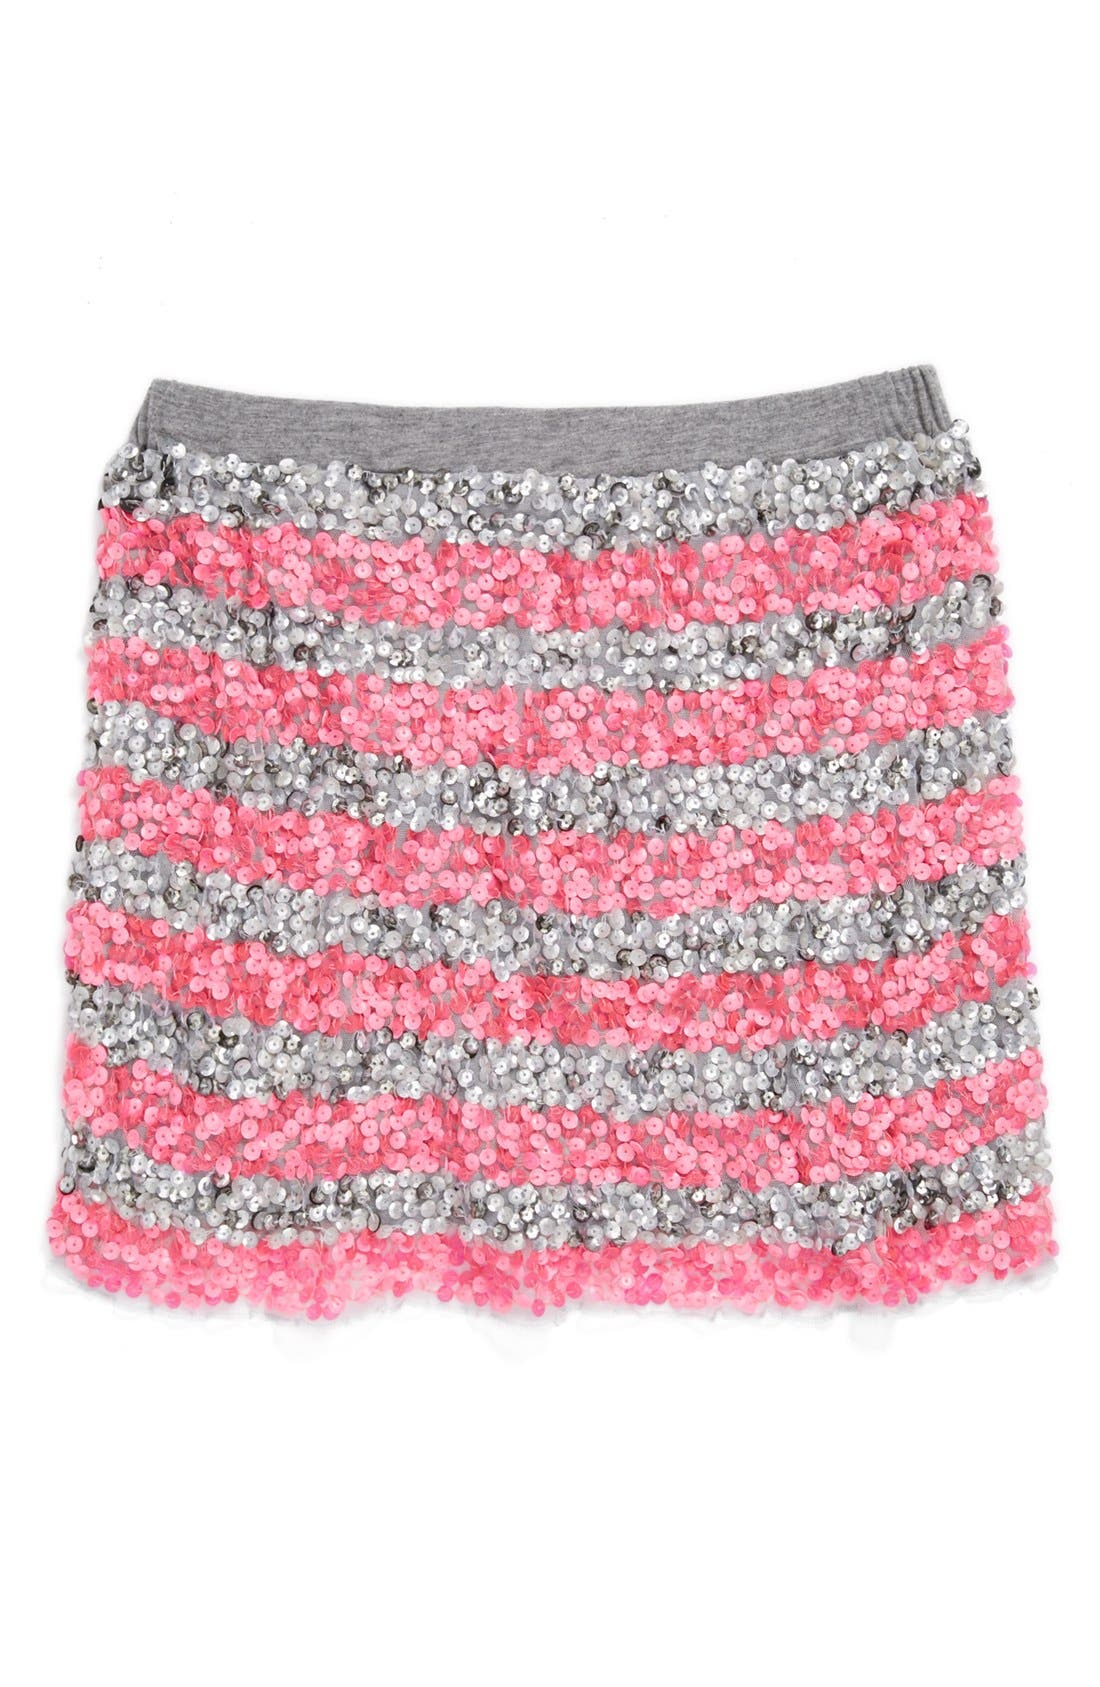 Alternate Image 1 Selected - Peek 'Zoe' Sequin Skirt (Toddler Girls, Little Girls & Big Girls)